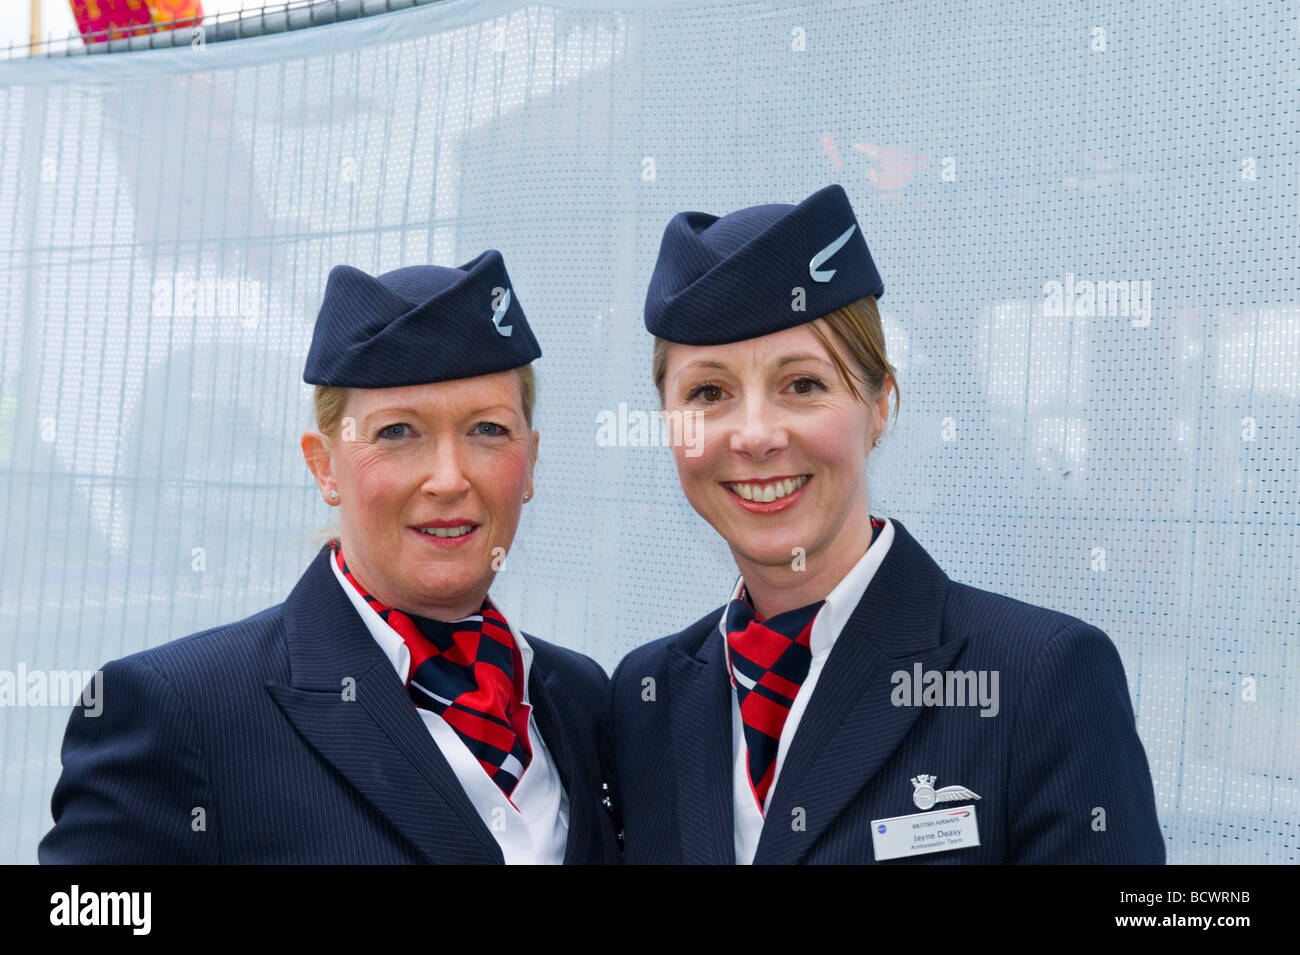 Taste of London food fair sponsored by British Airways or BA , two pretty smiling air hostesses crew in uniform - Stock Image